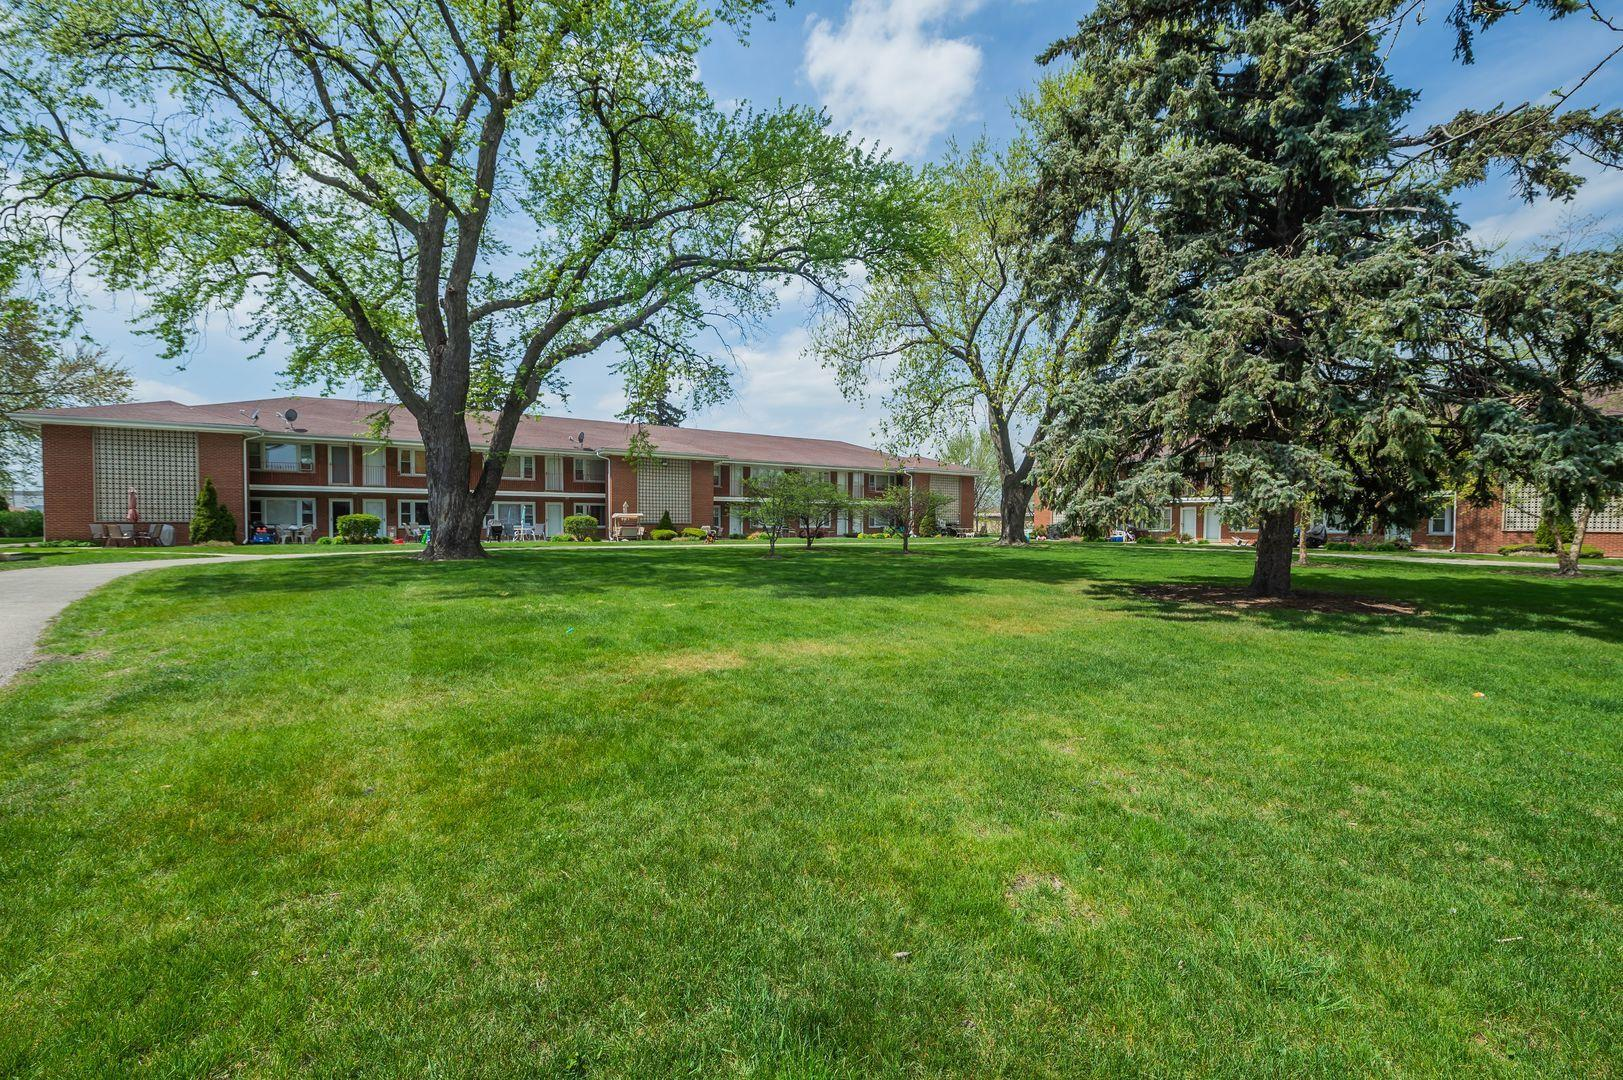 1111 Holiday Lane #17, Des Plaines, IL 60016 - #: 11066290